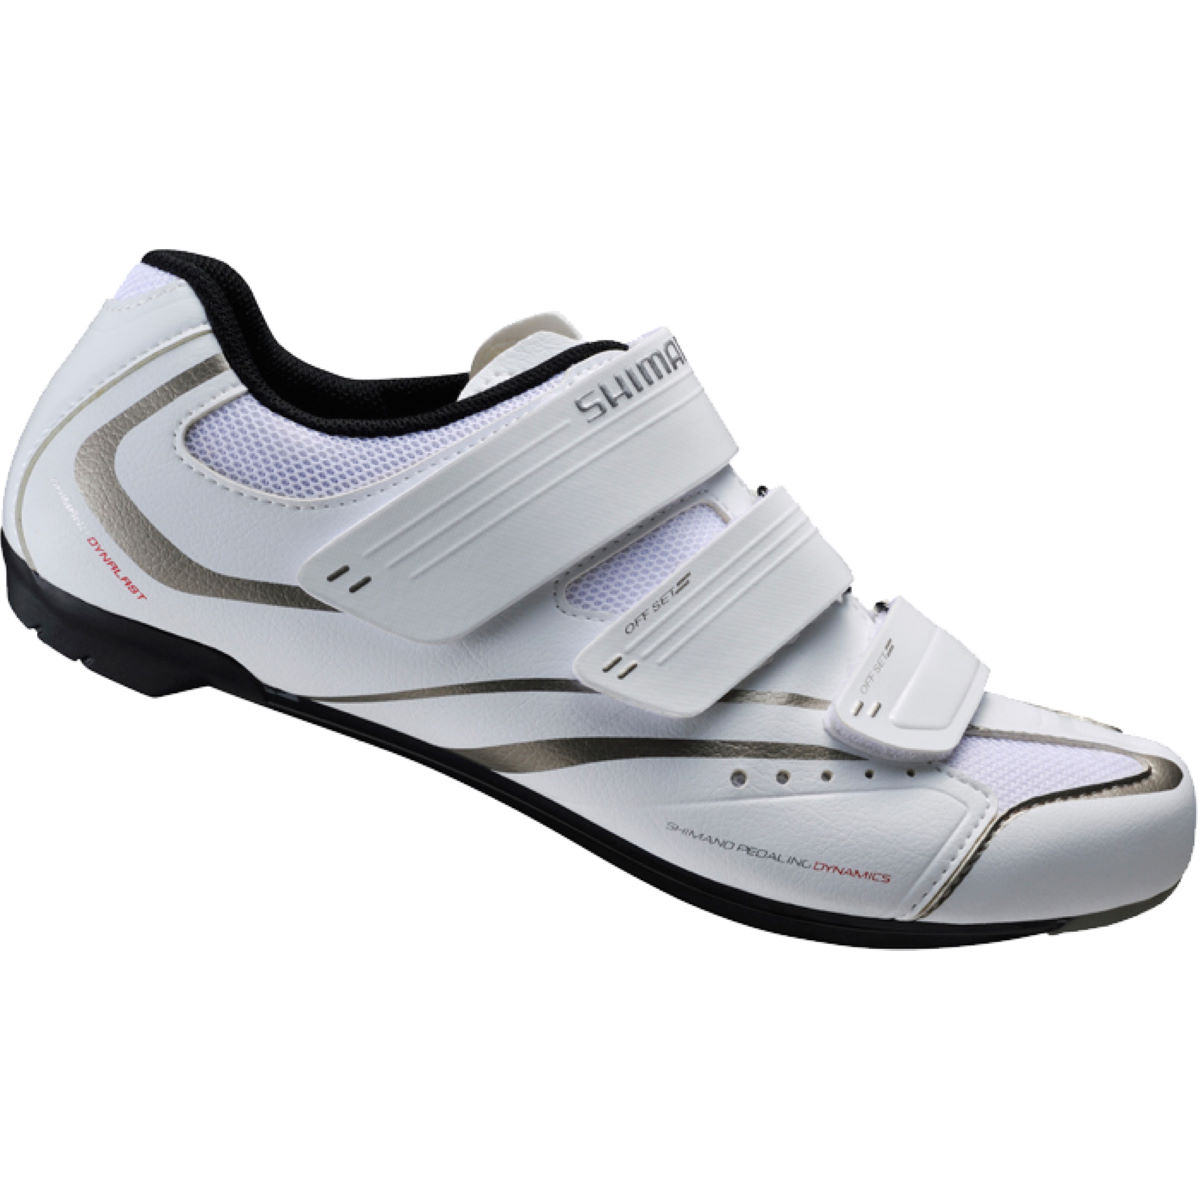 Best Shoes For Shimano Spd R